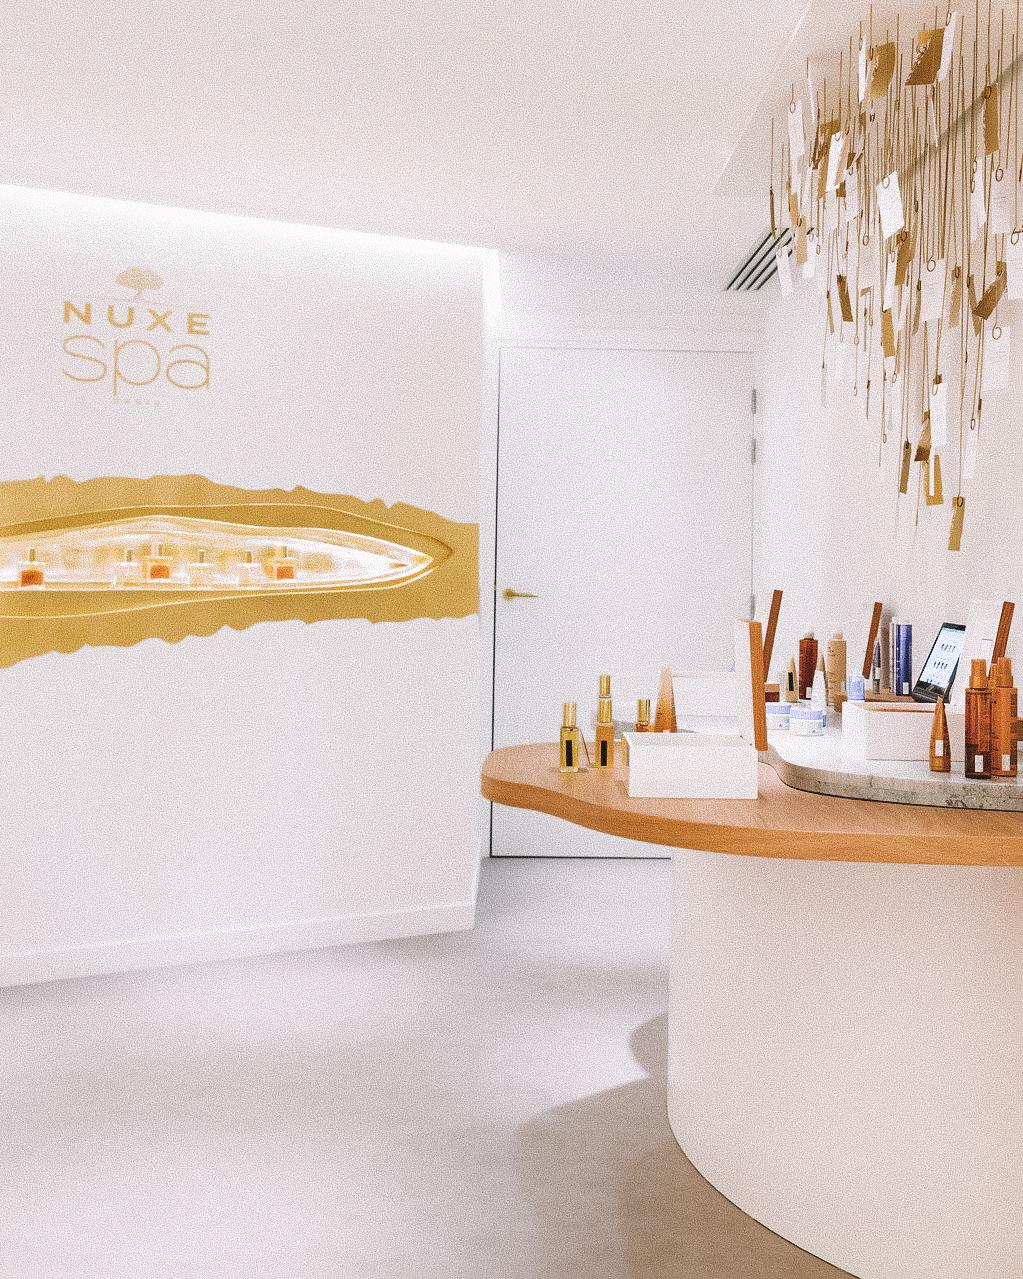 nuxe spa at printemps